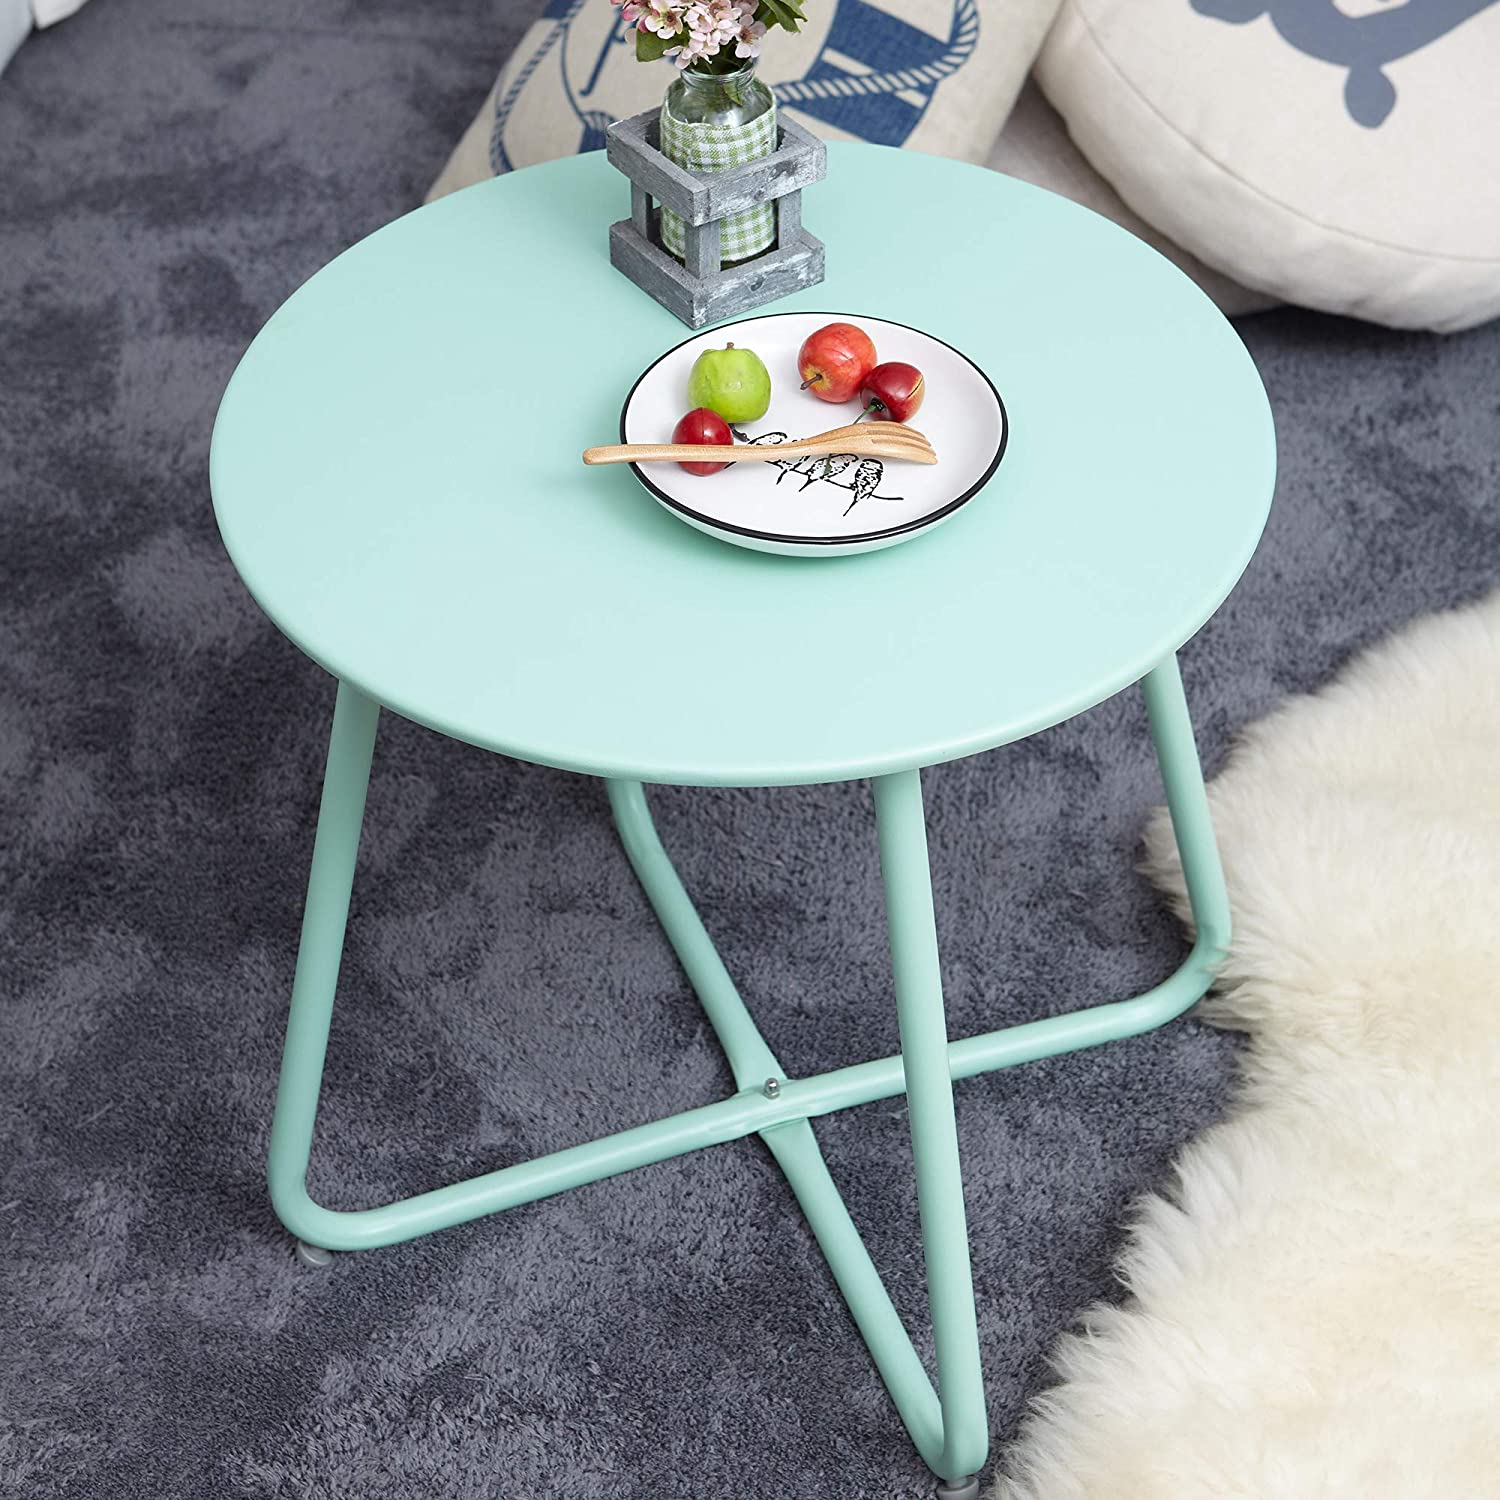 Steel Patio Side Table | Round & Retro Style | Weather Resistant for Outdoor Living | Mint Green